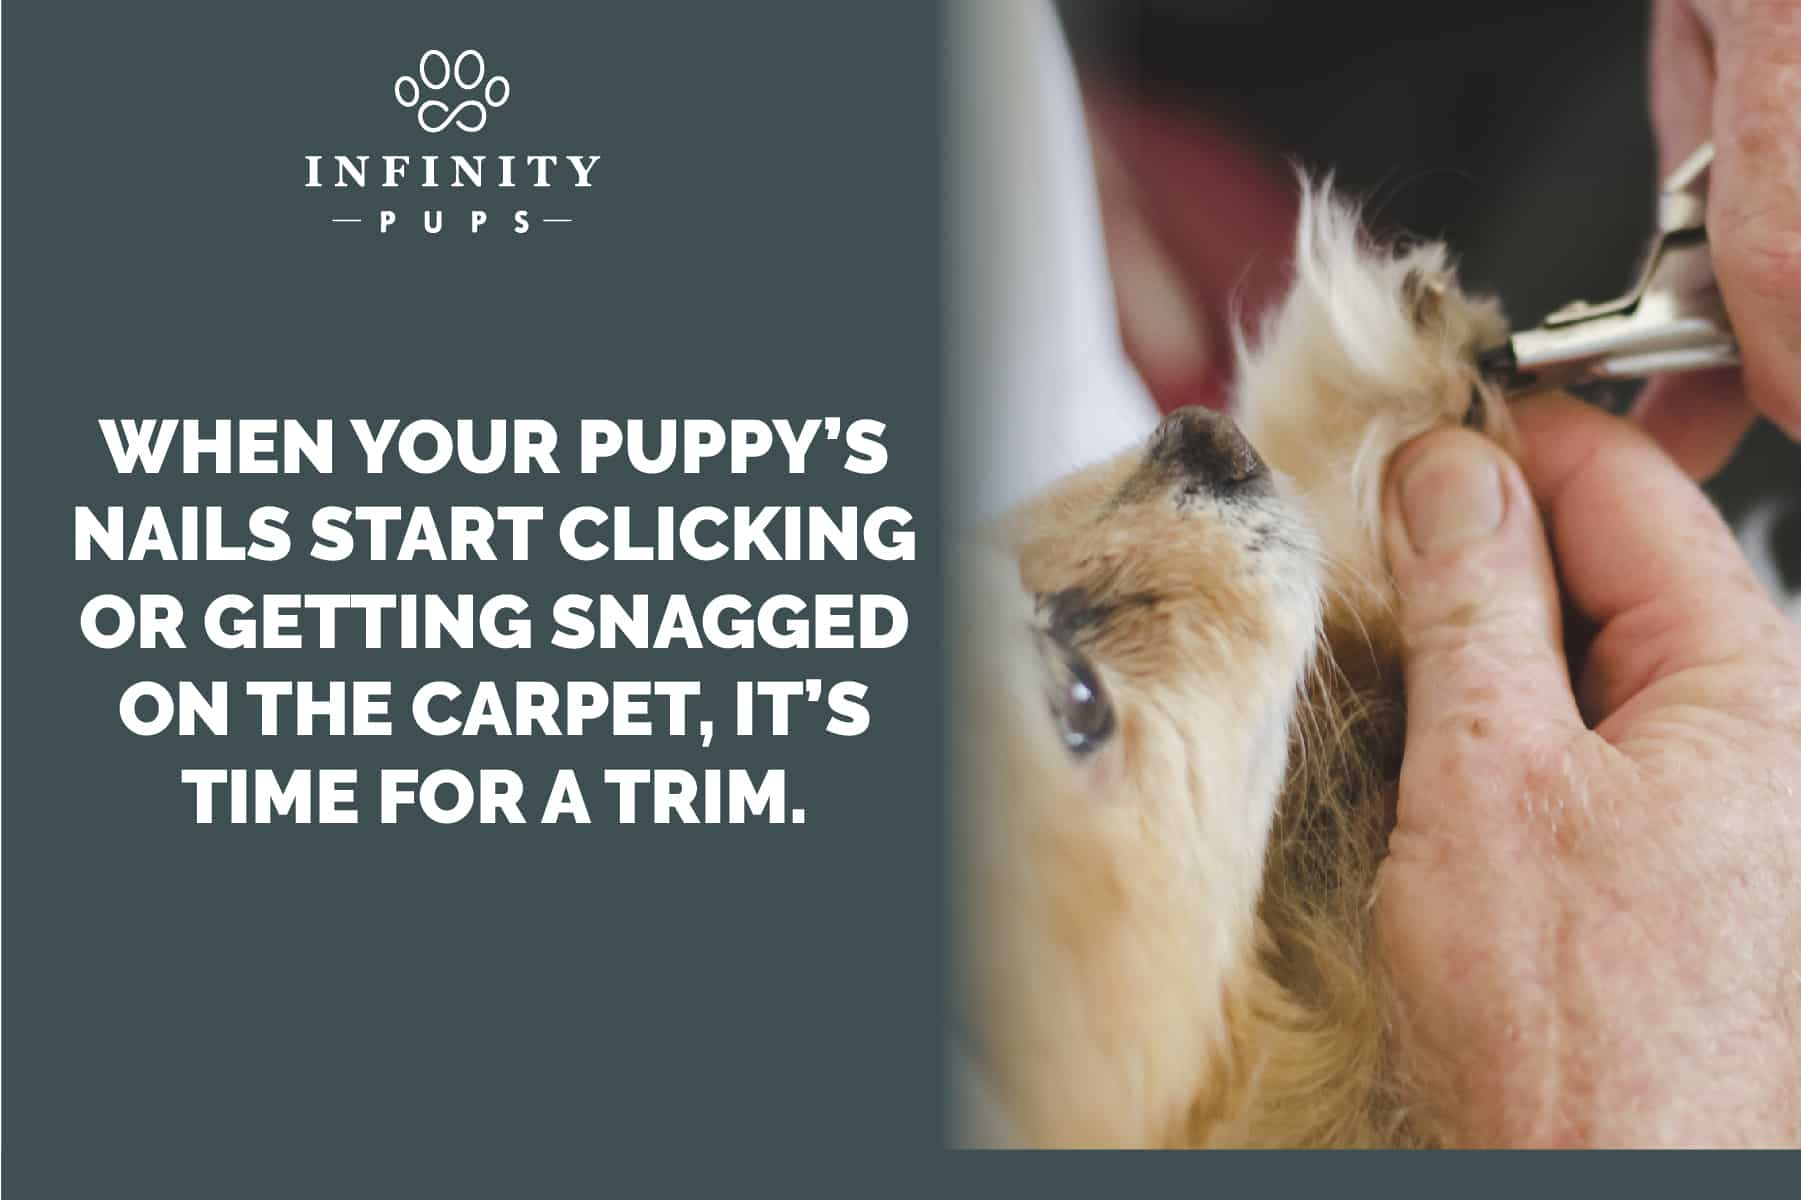 trim your puppy's nails when they start clicking on the floor